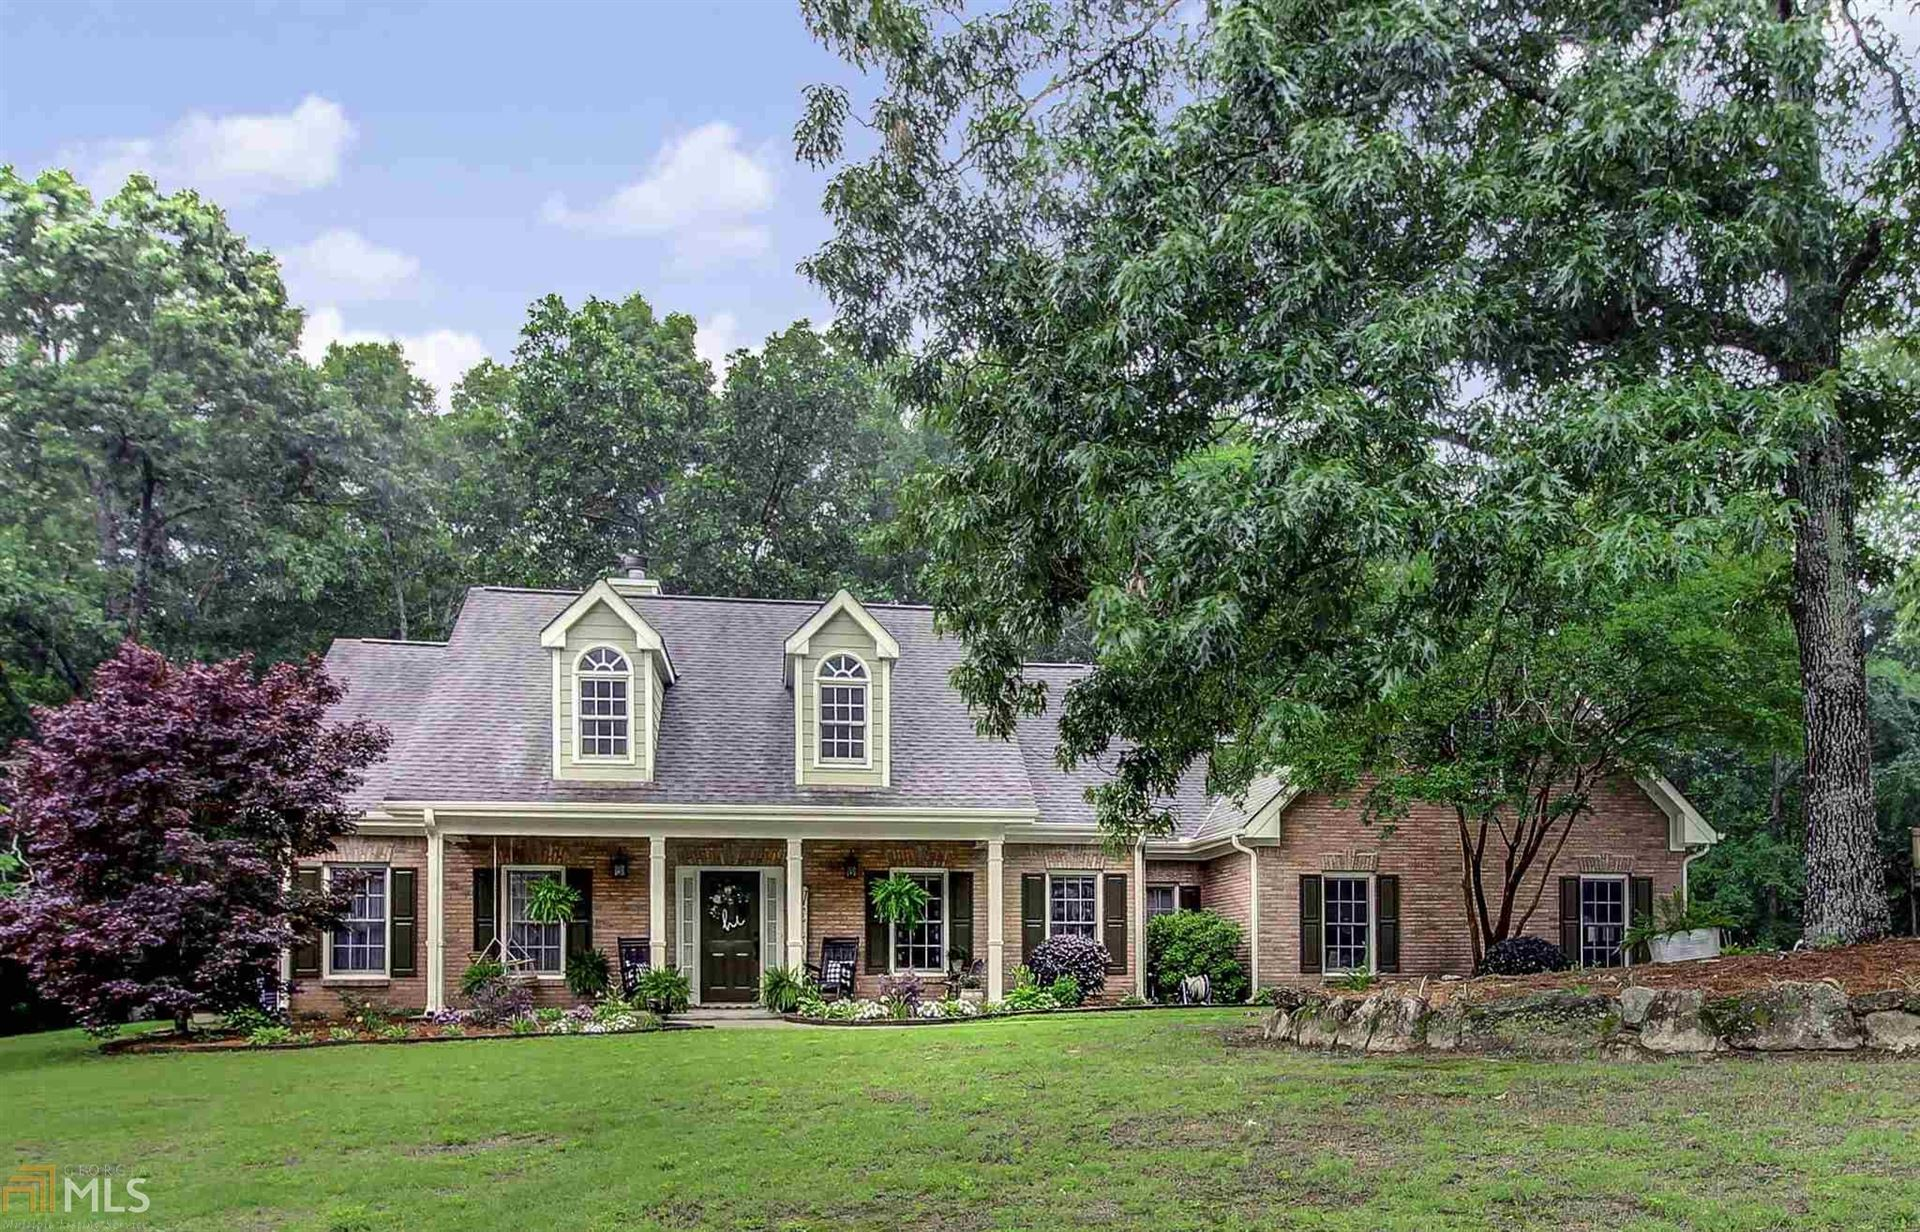 90 Old Hickory Ln, Oxford, GA 30054 - #: 8798647